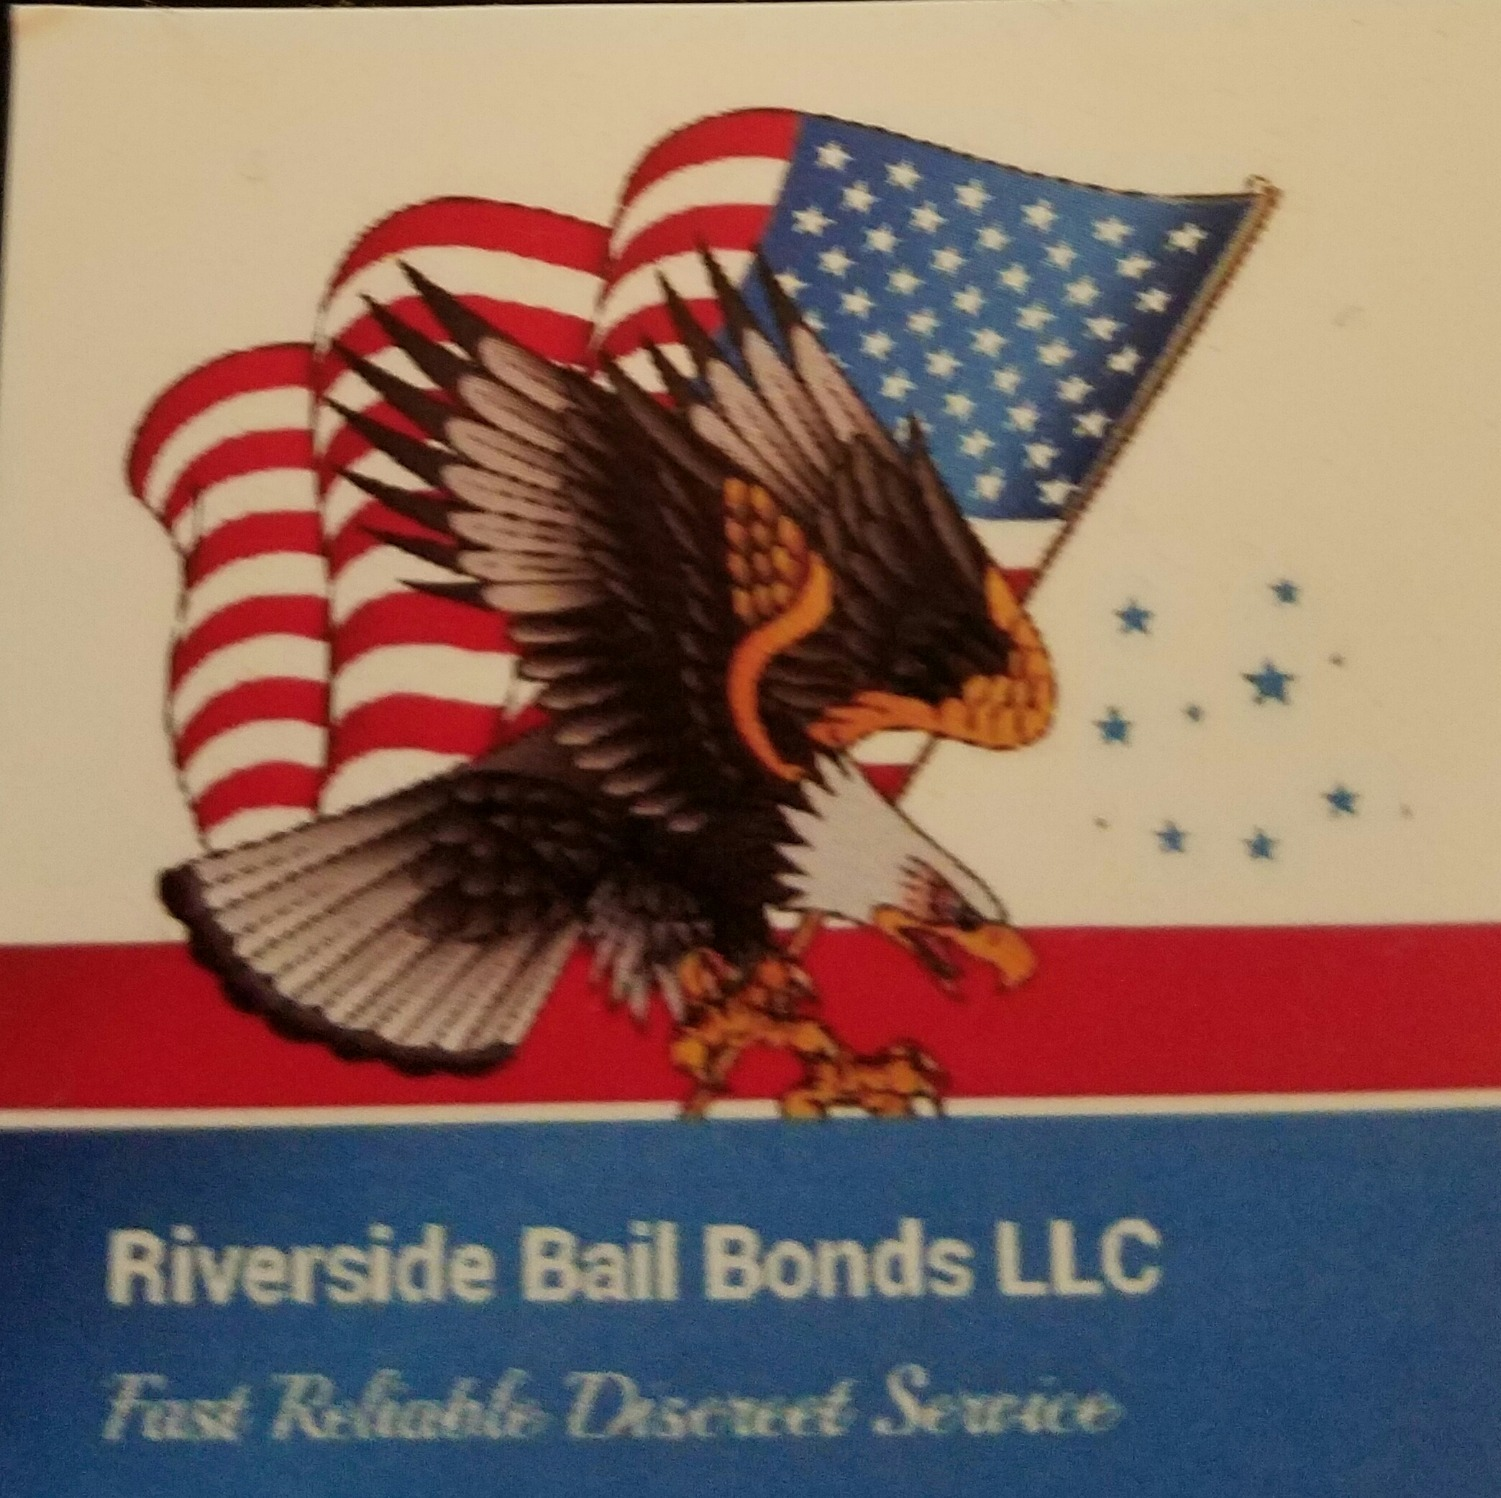 Riverside Bail Bonds LLC image 1